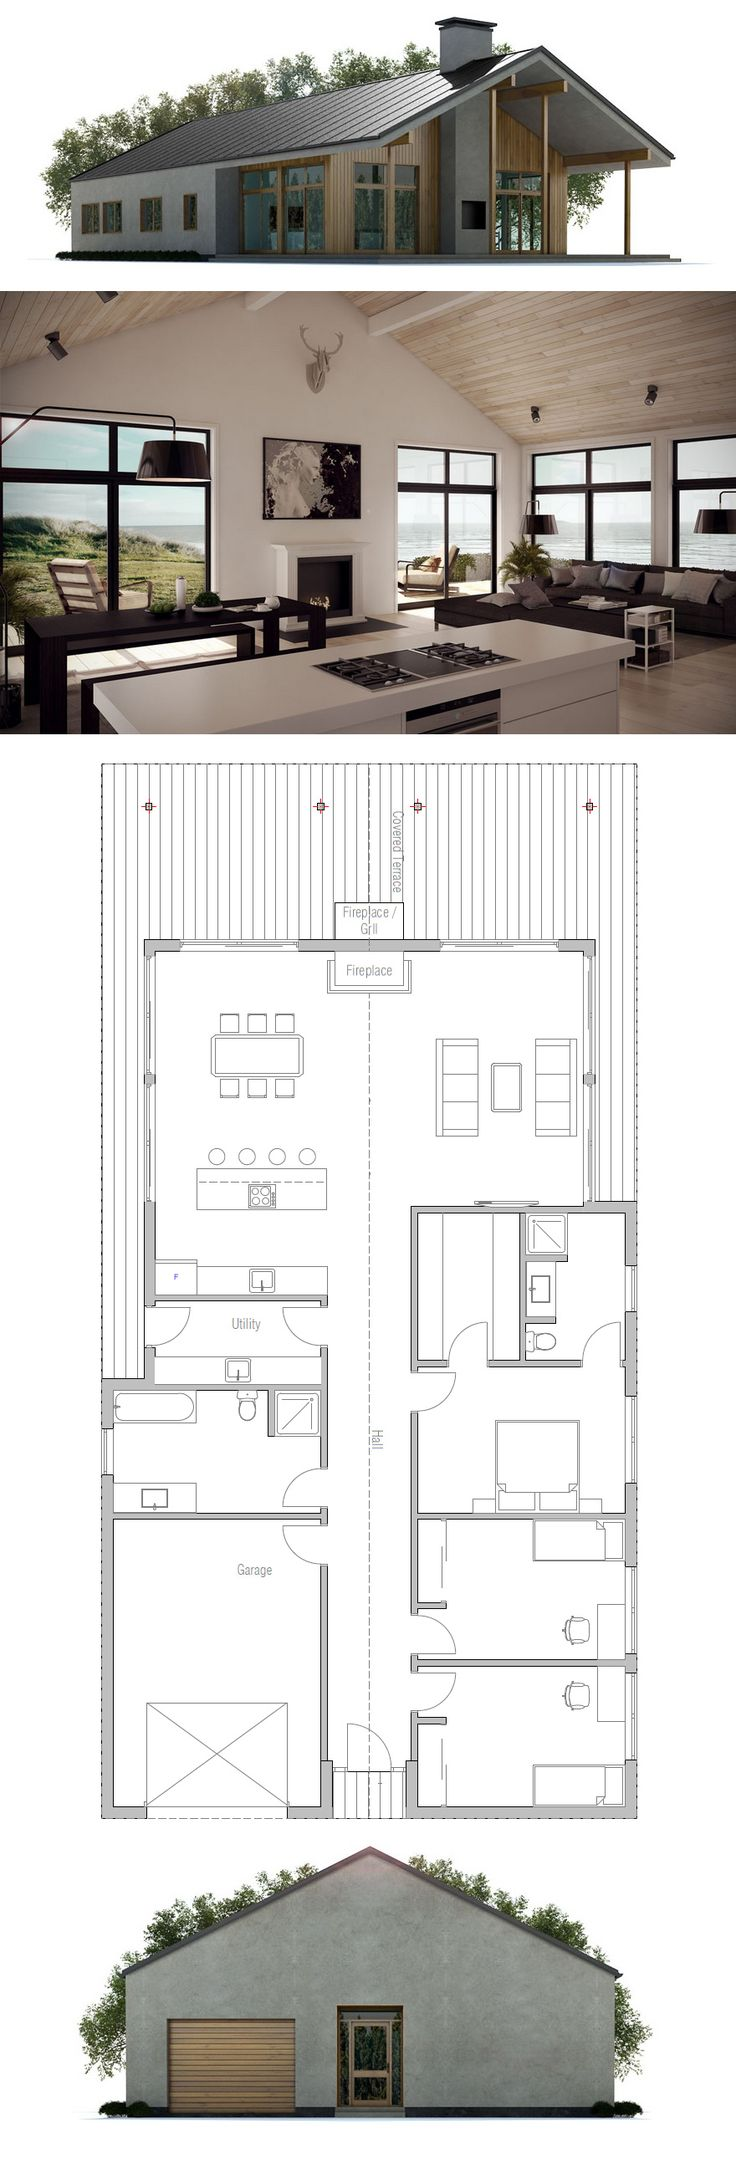 House Plan 324 best House Plans images